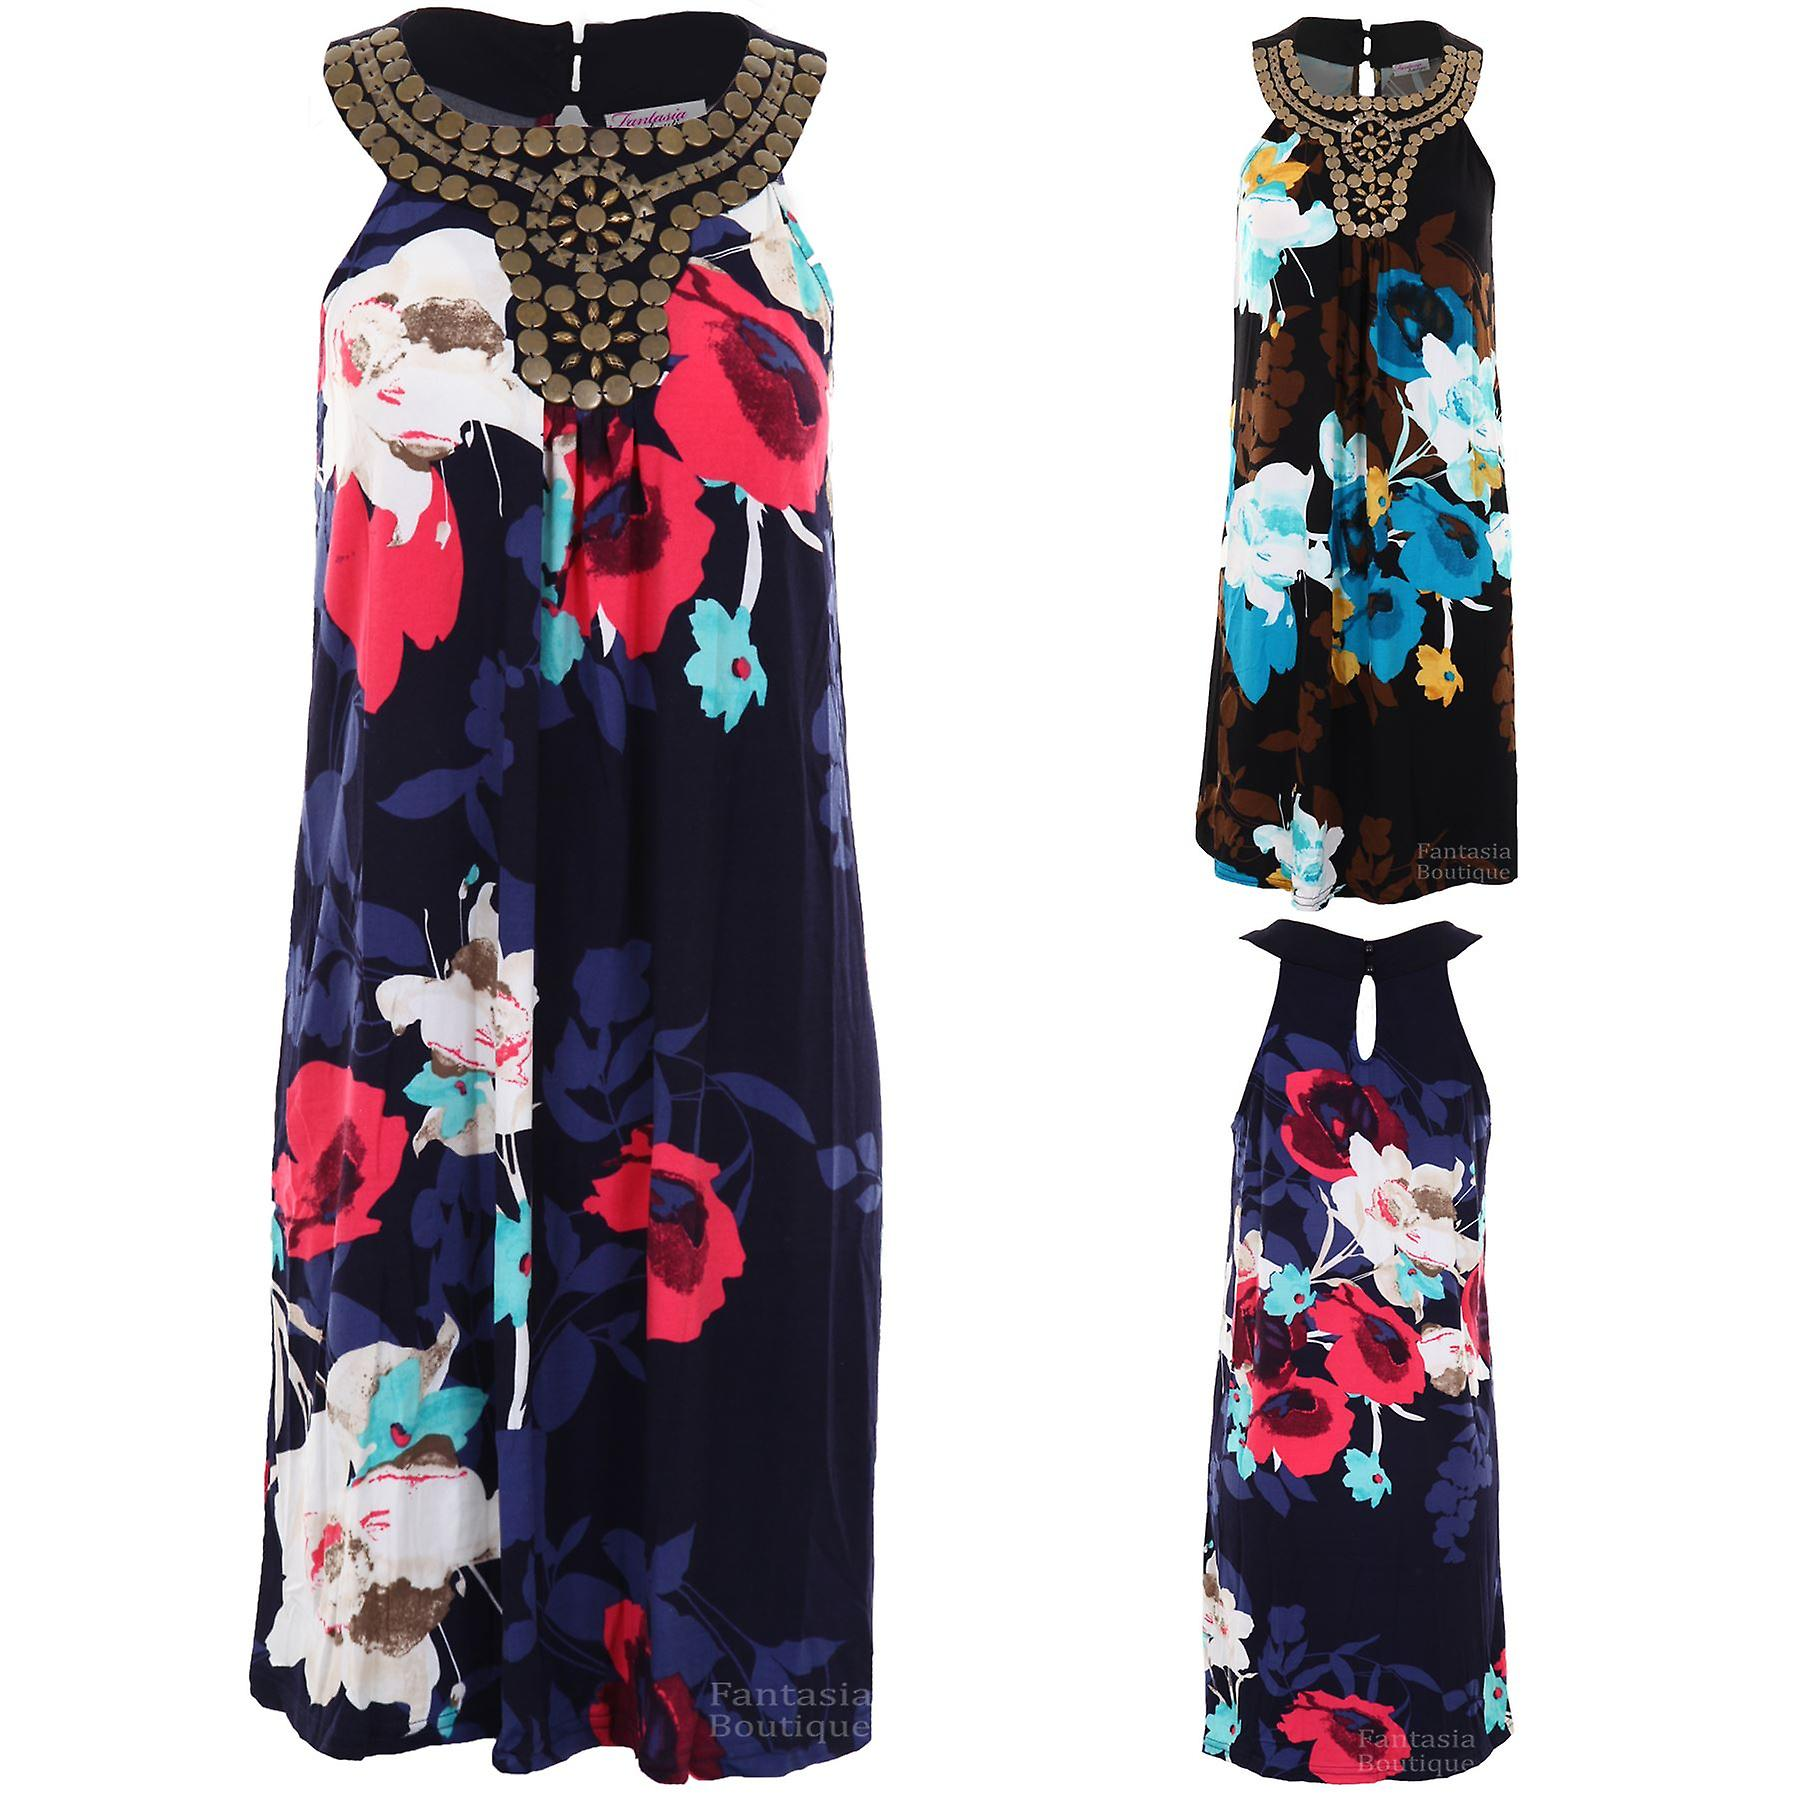 Ladies Sleeveless Floral Print Racerback Gathered Women's Shift Party Dress